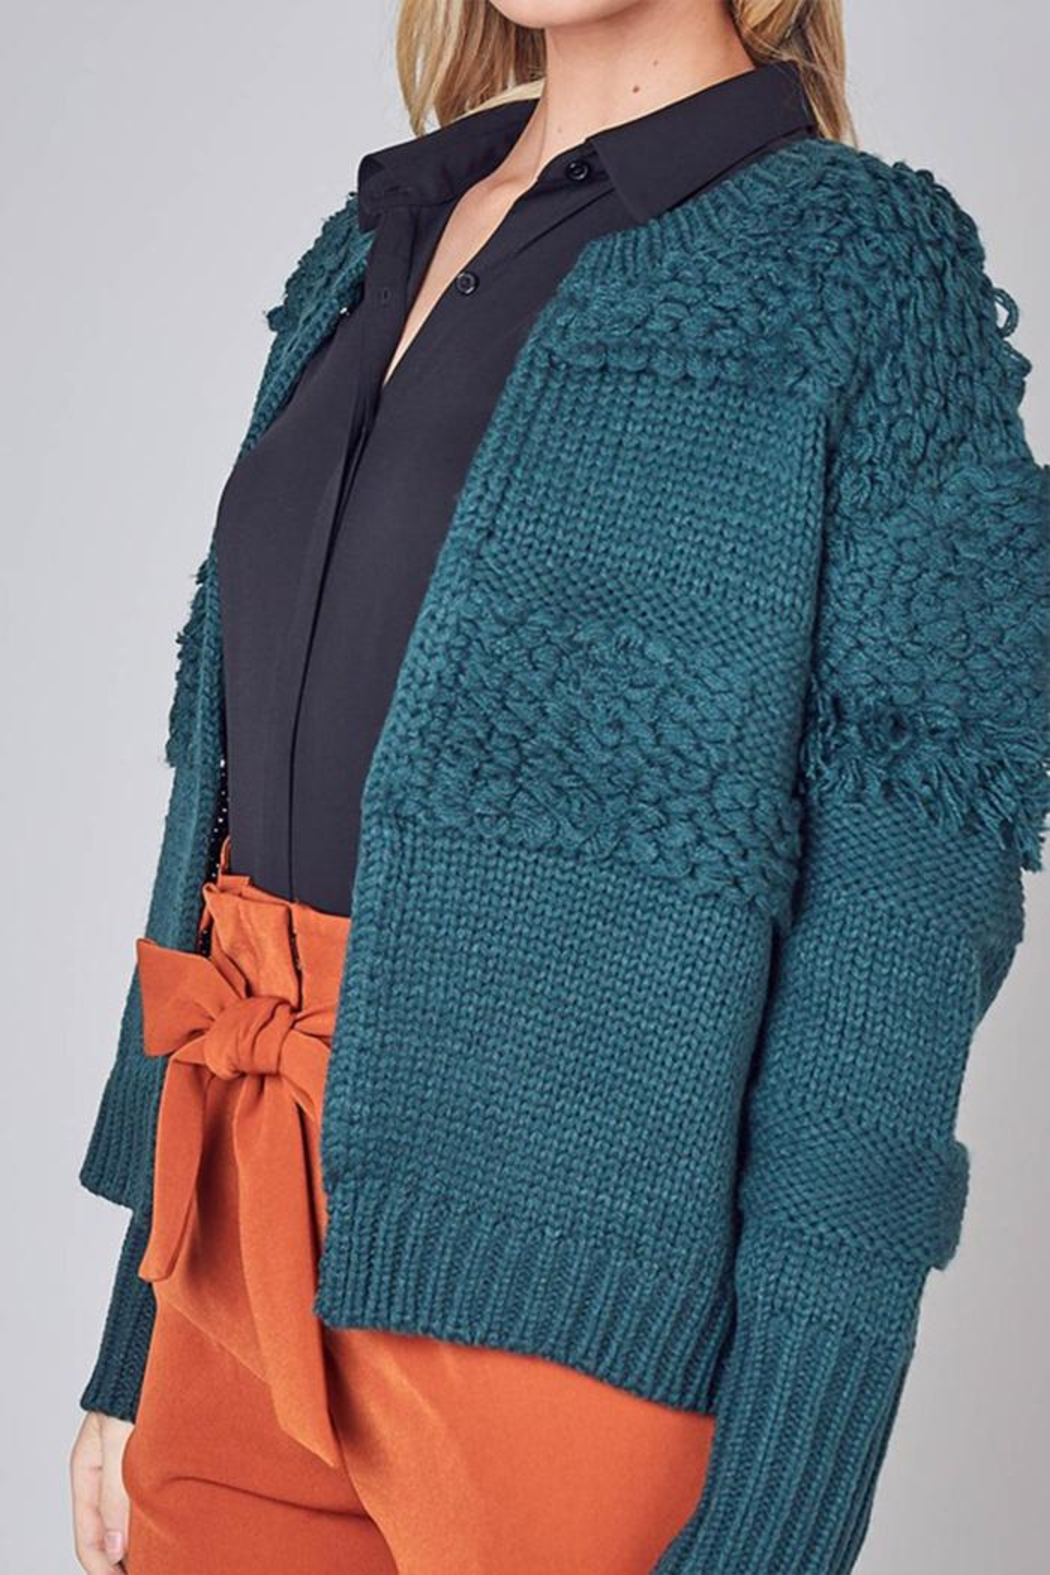 Do & Be Detail Hook-Closure Cardigan - Back Cropped Image